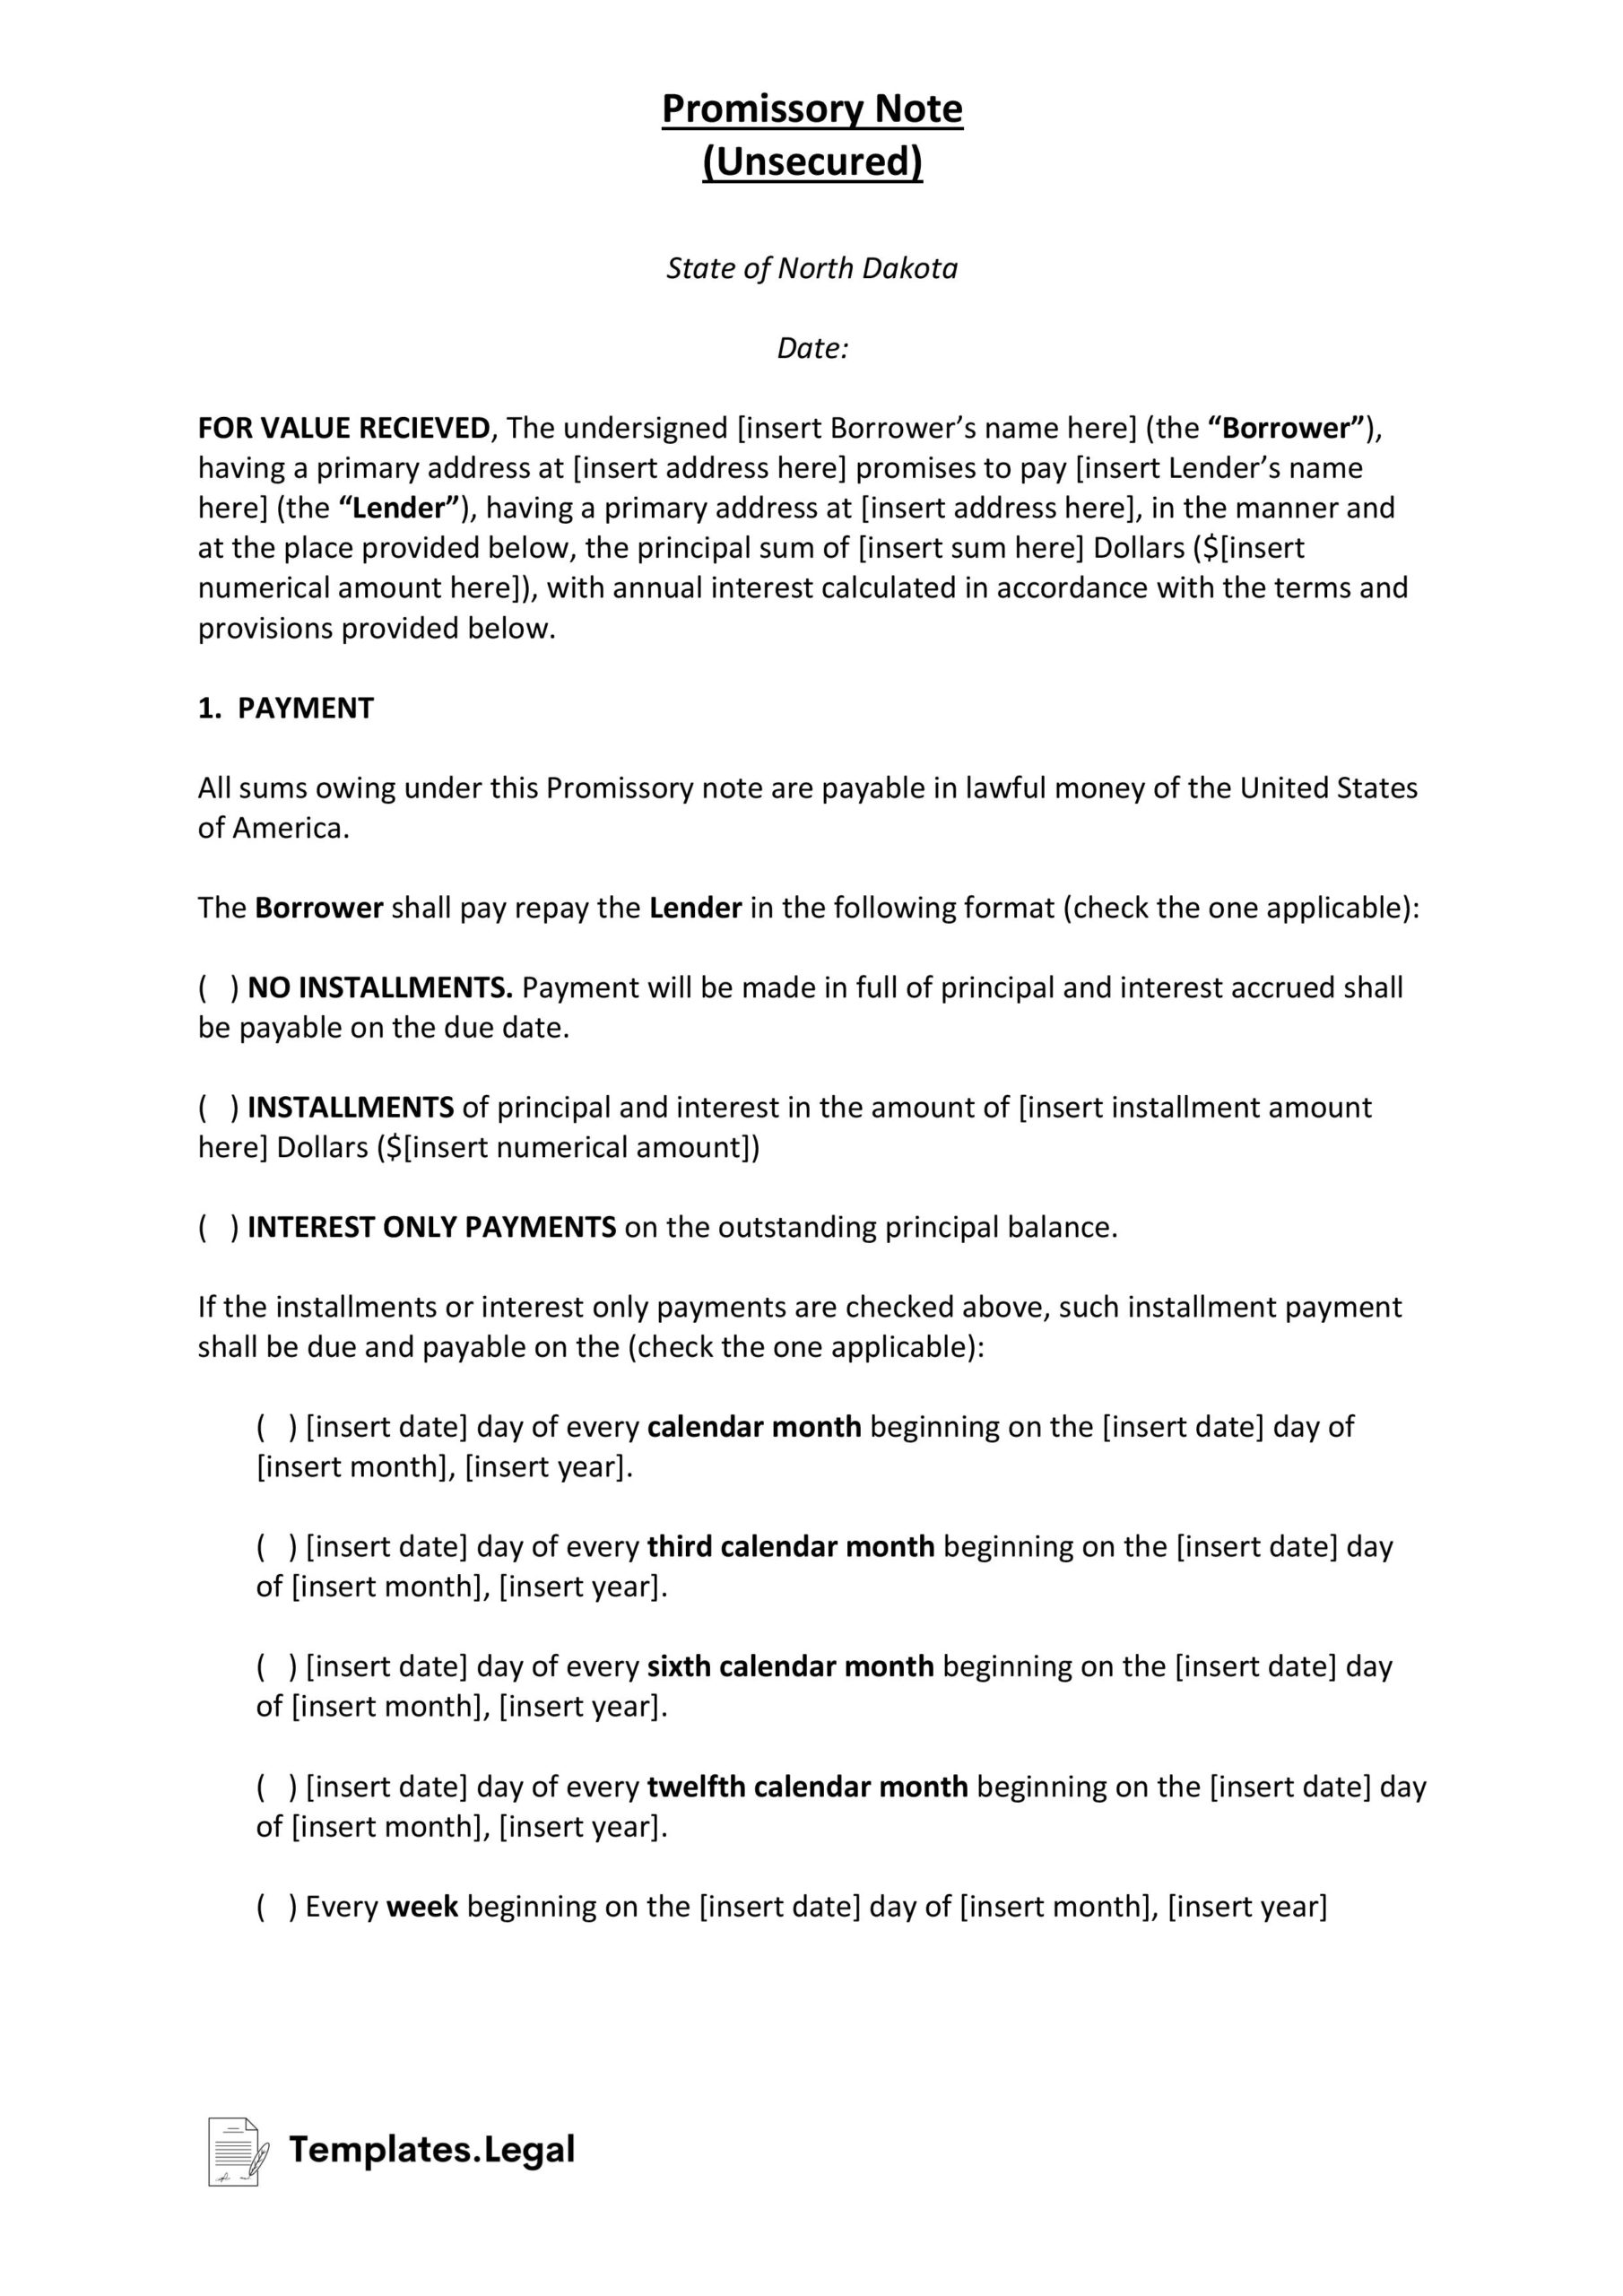 North Dakota Unsecured Promissory Note - Templates.Legal